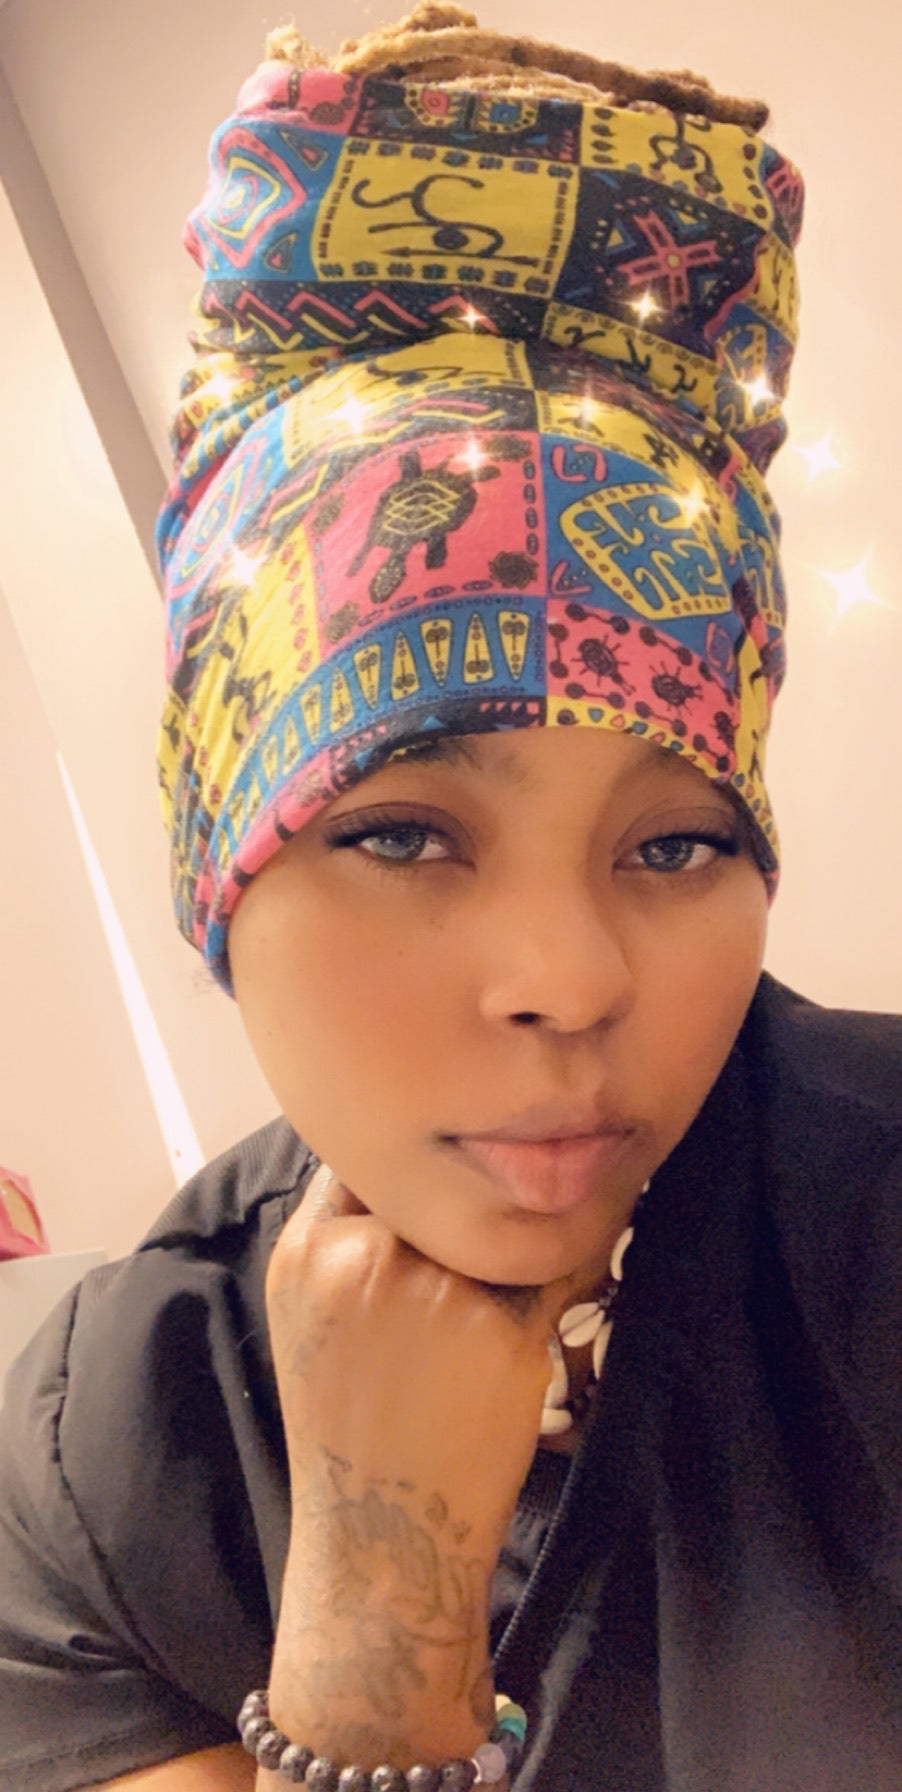 2 in 1 face protector and headwrap/loc sock